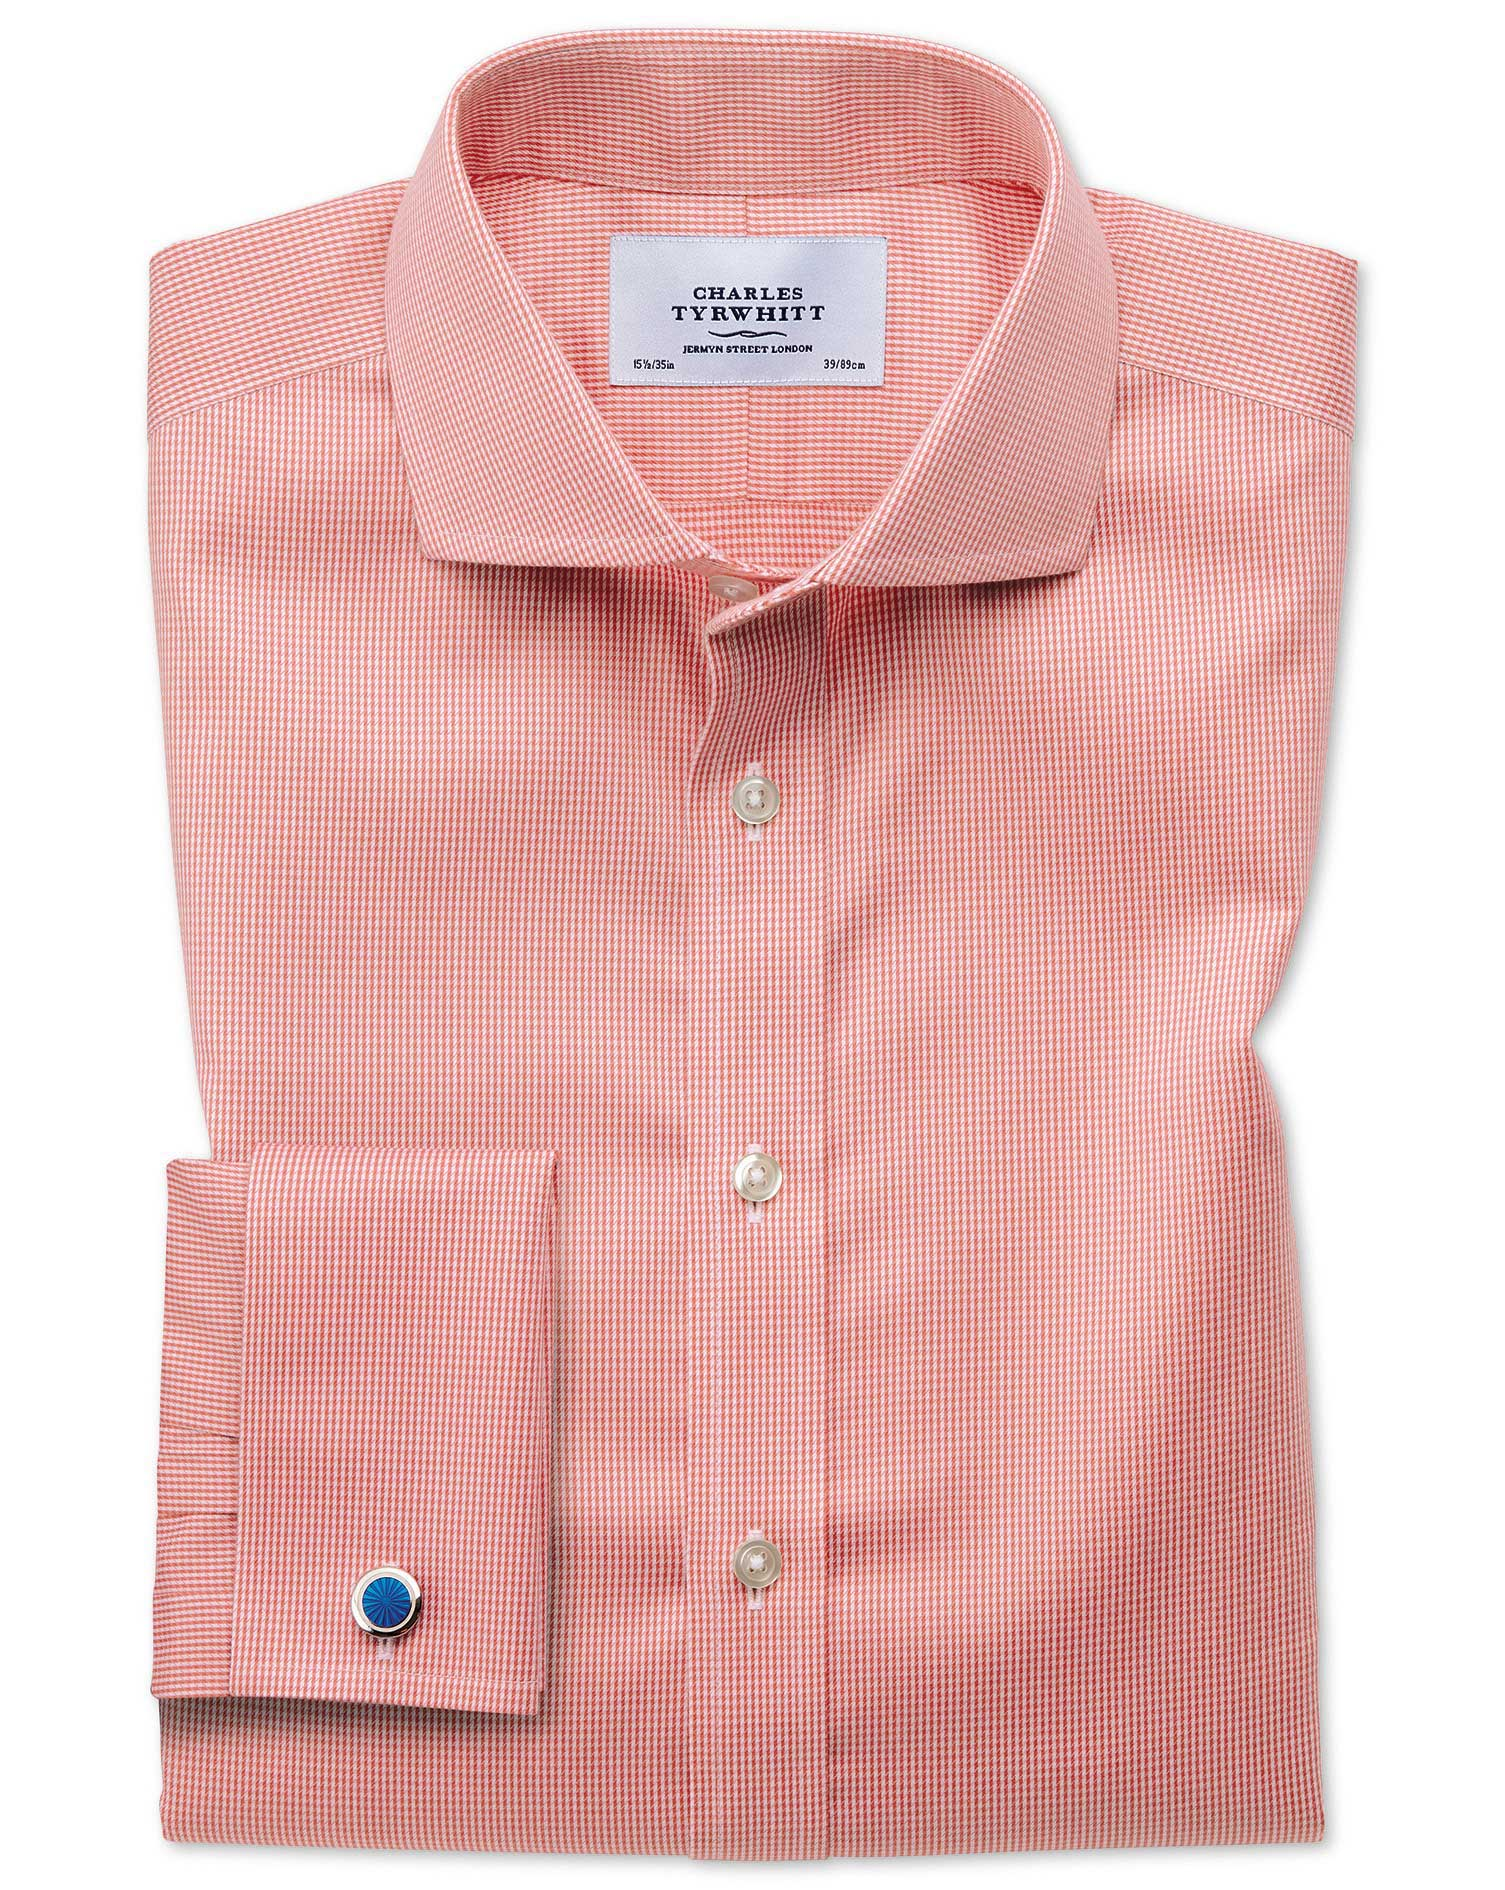 Extra Slim Fit Cutaway Non-Iron Puppytooth Coral Cotton Formal Shirt Single Cuff Size 15.5/35 by Cha